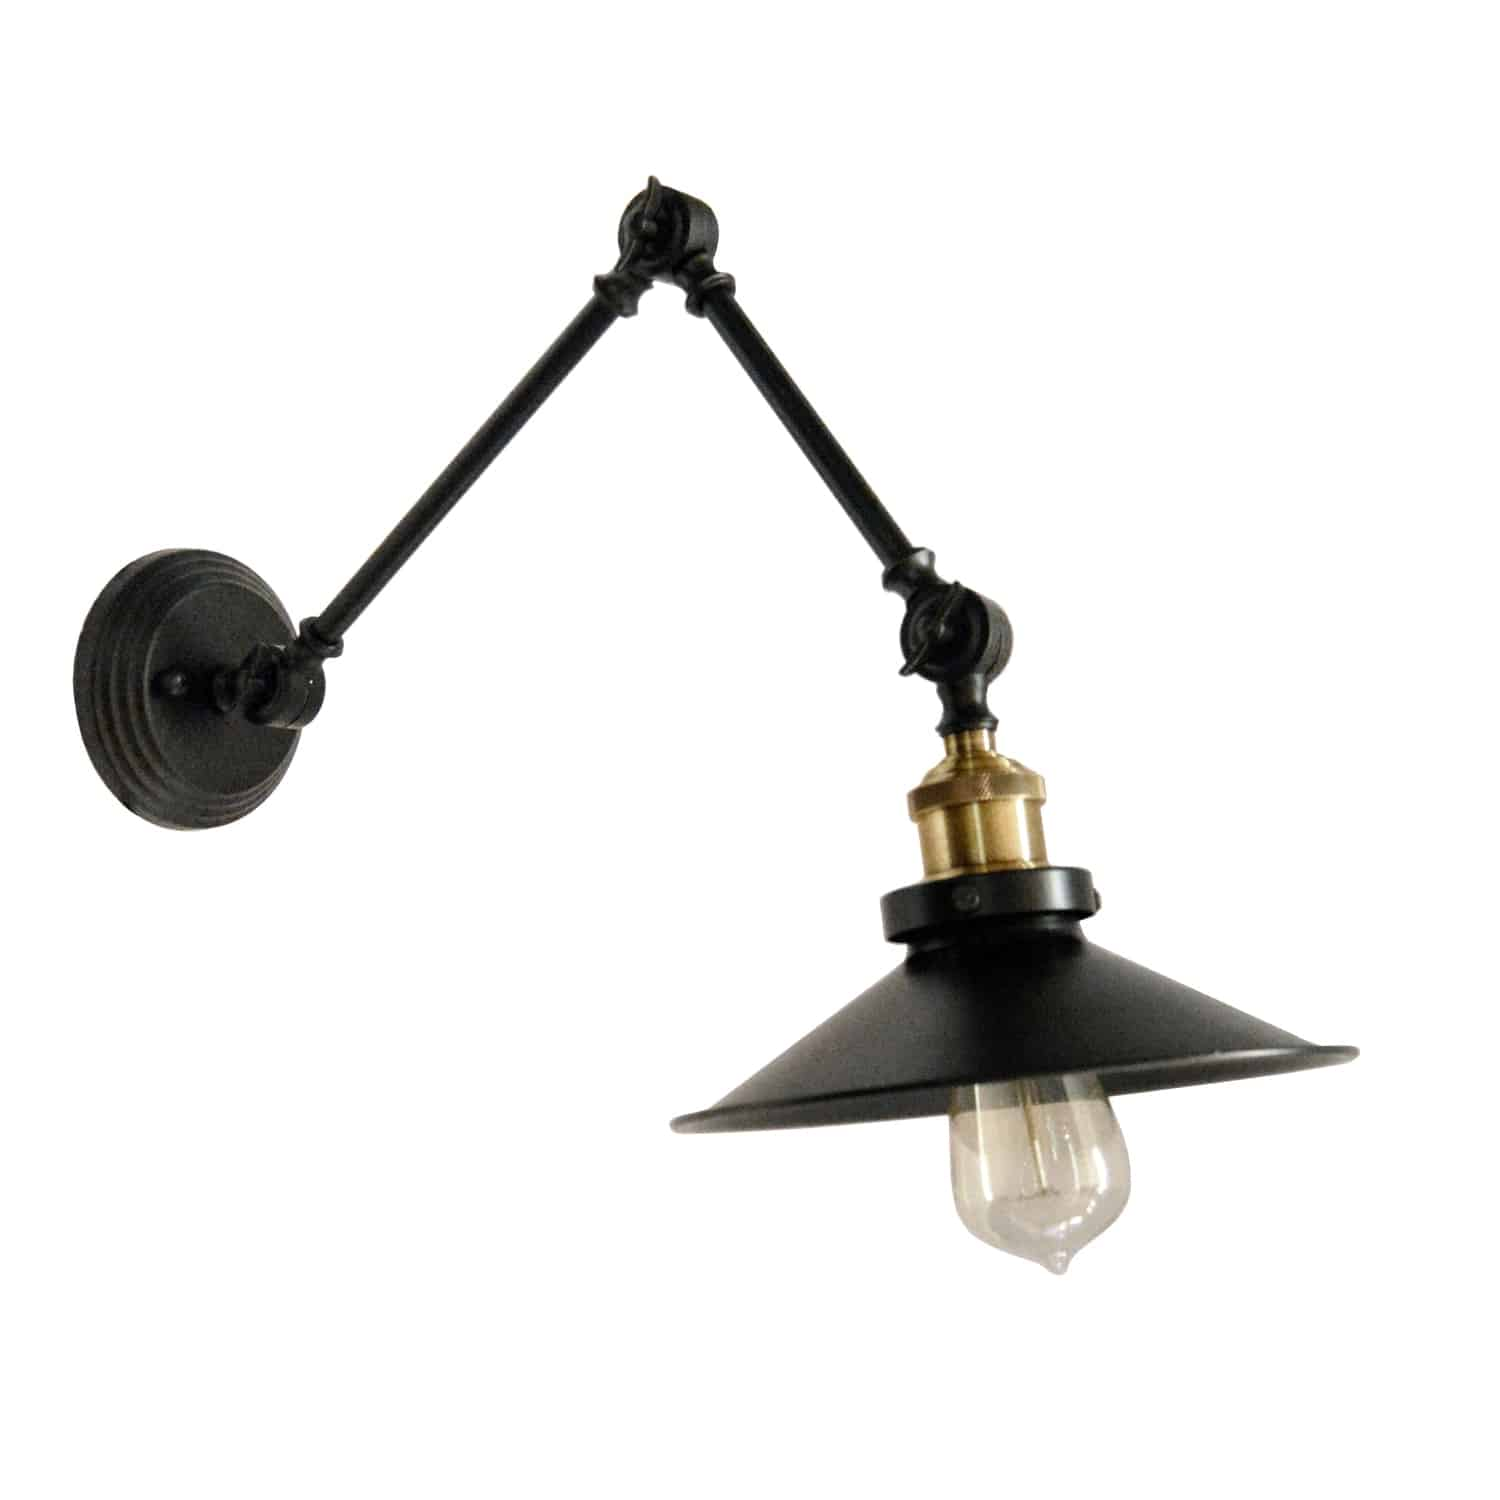 1 Light Incandescent Adjustable Wall Lamp, Black Finish